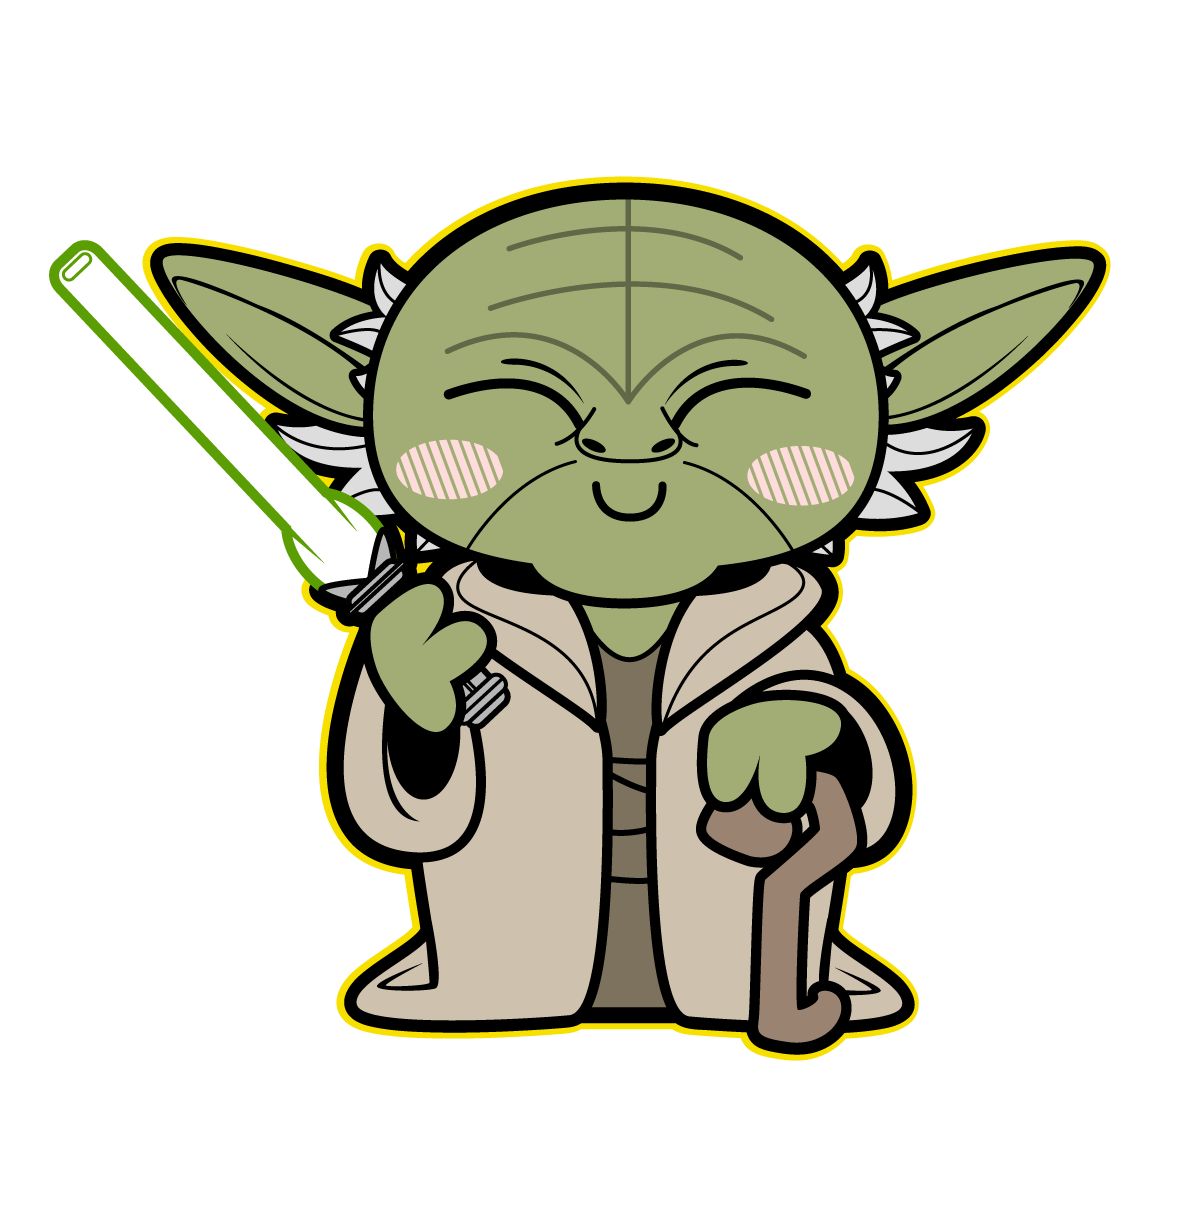 Star wars day clipart image download Kawaii Star wars | cool and cute. | Pinterest | Kawaii, Star and Draw image download